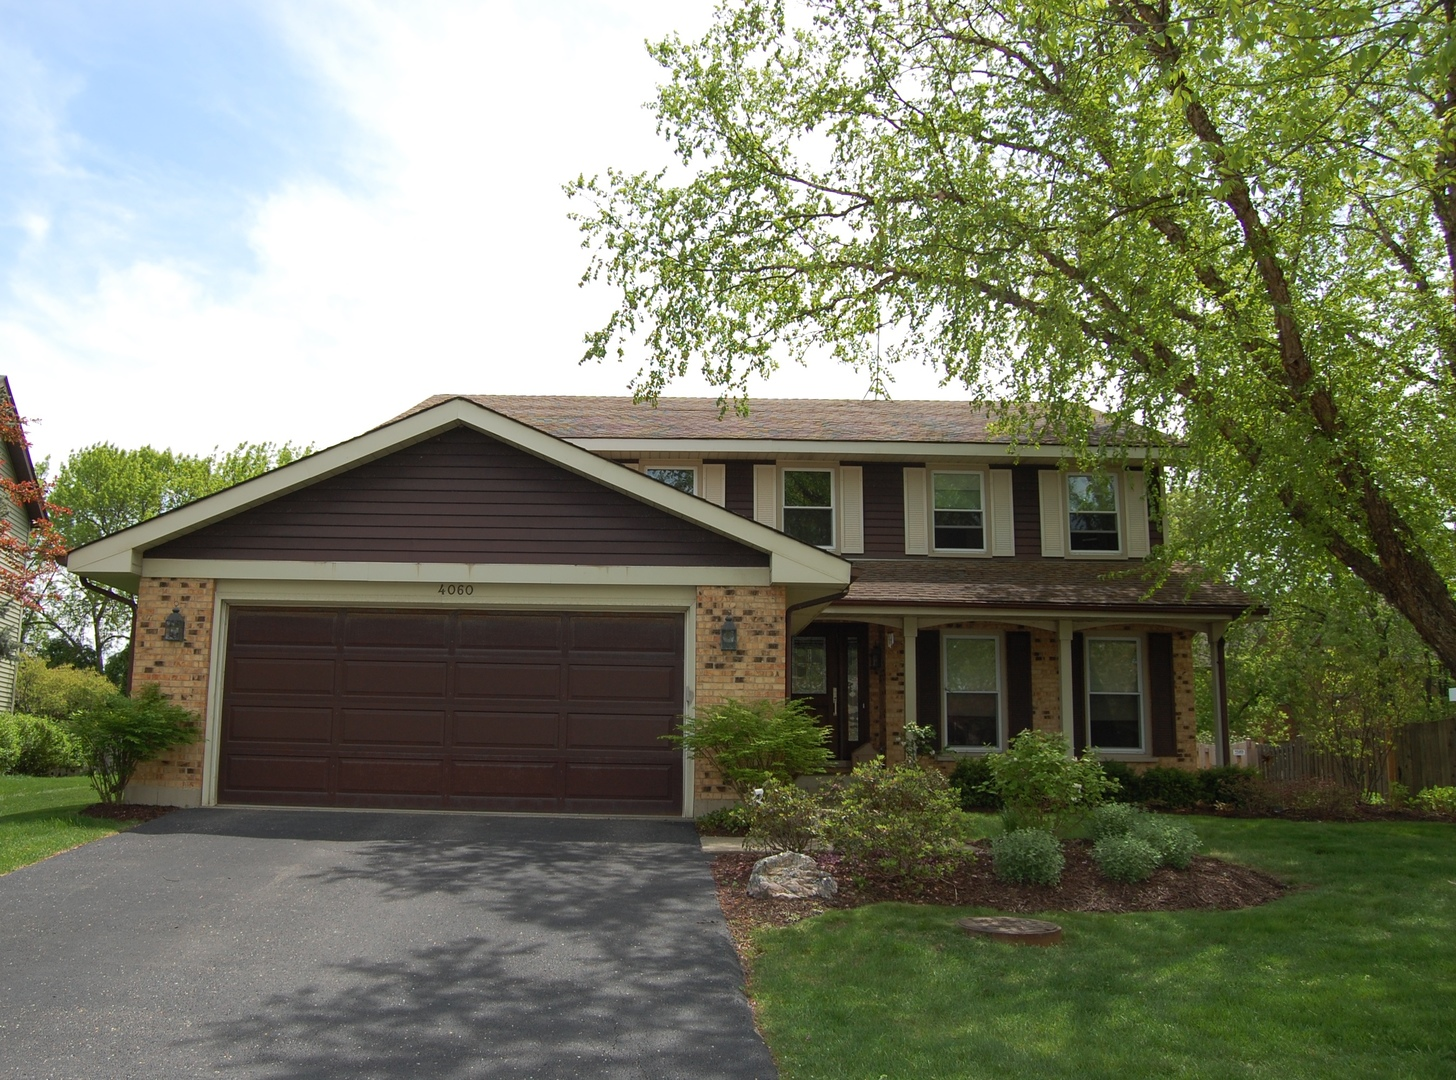 4060 Lindenwood Lane, Northbrook in Cook County, IL 60062 Home for Sale